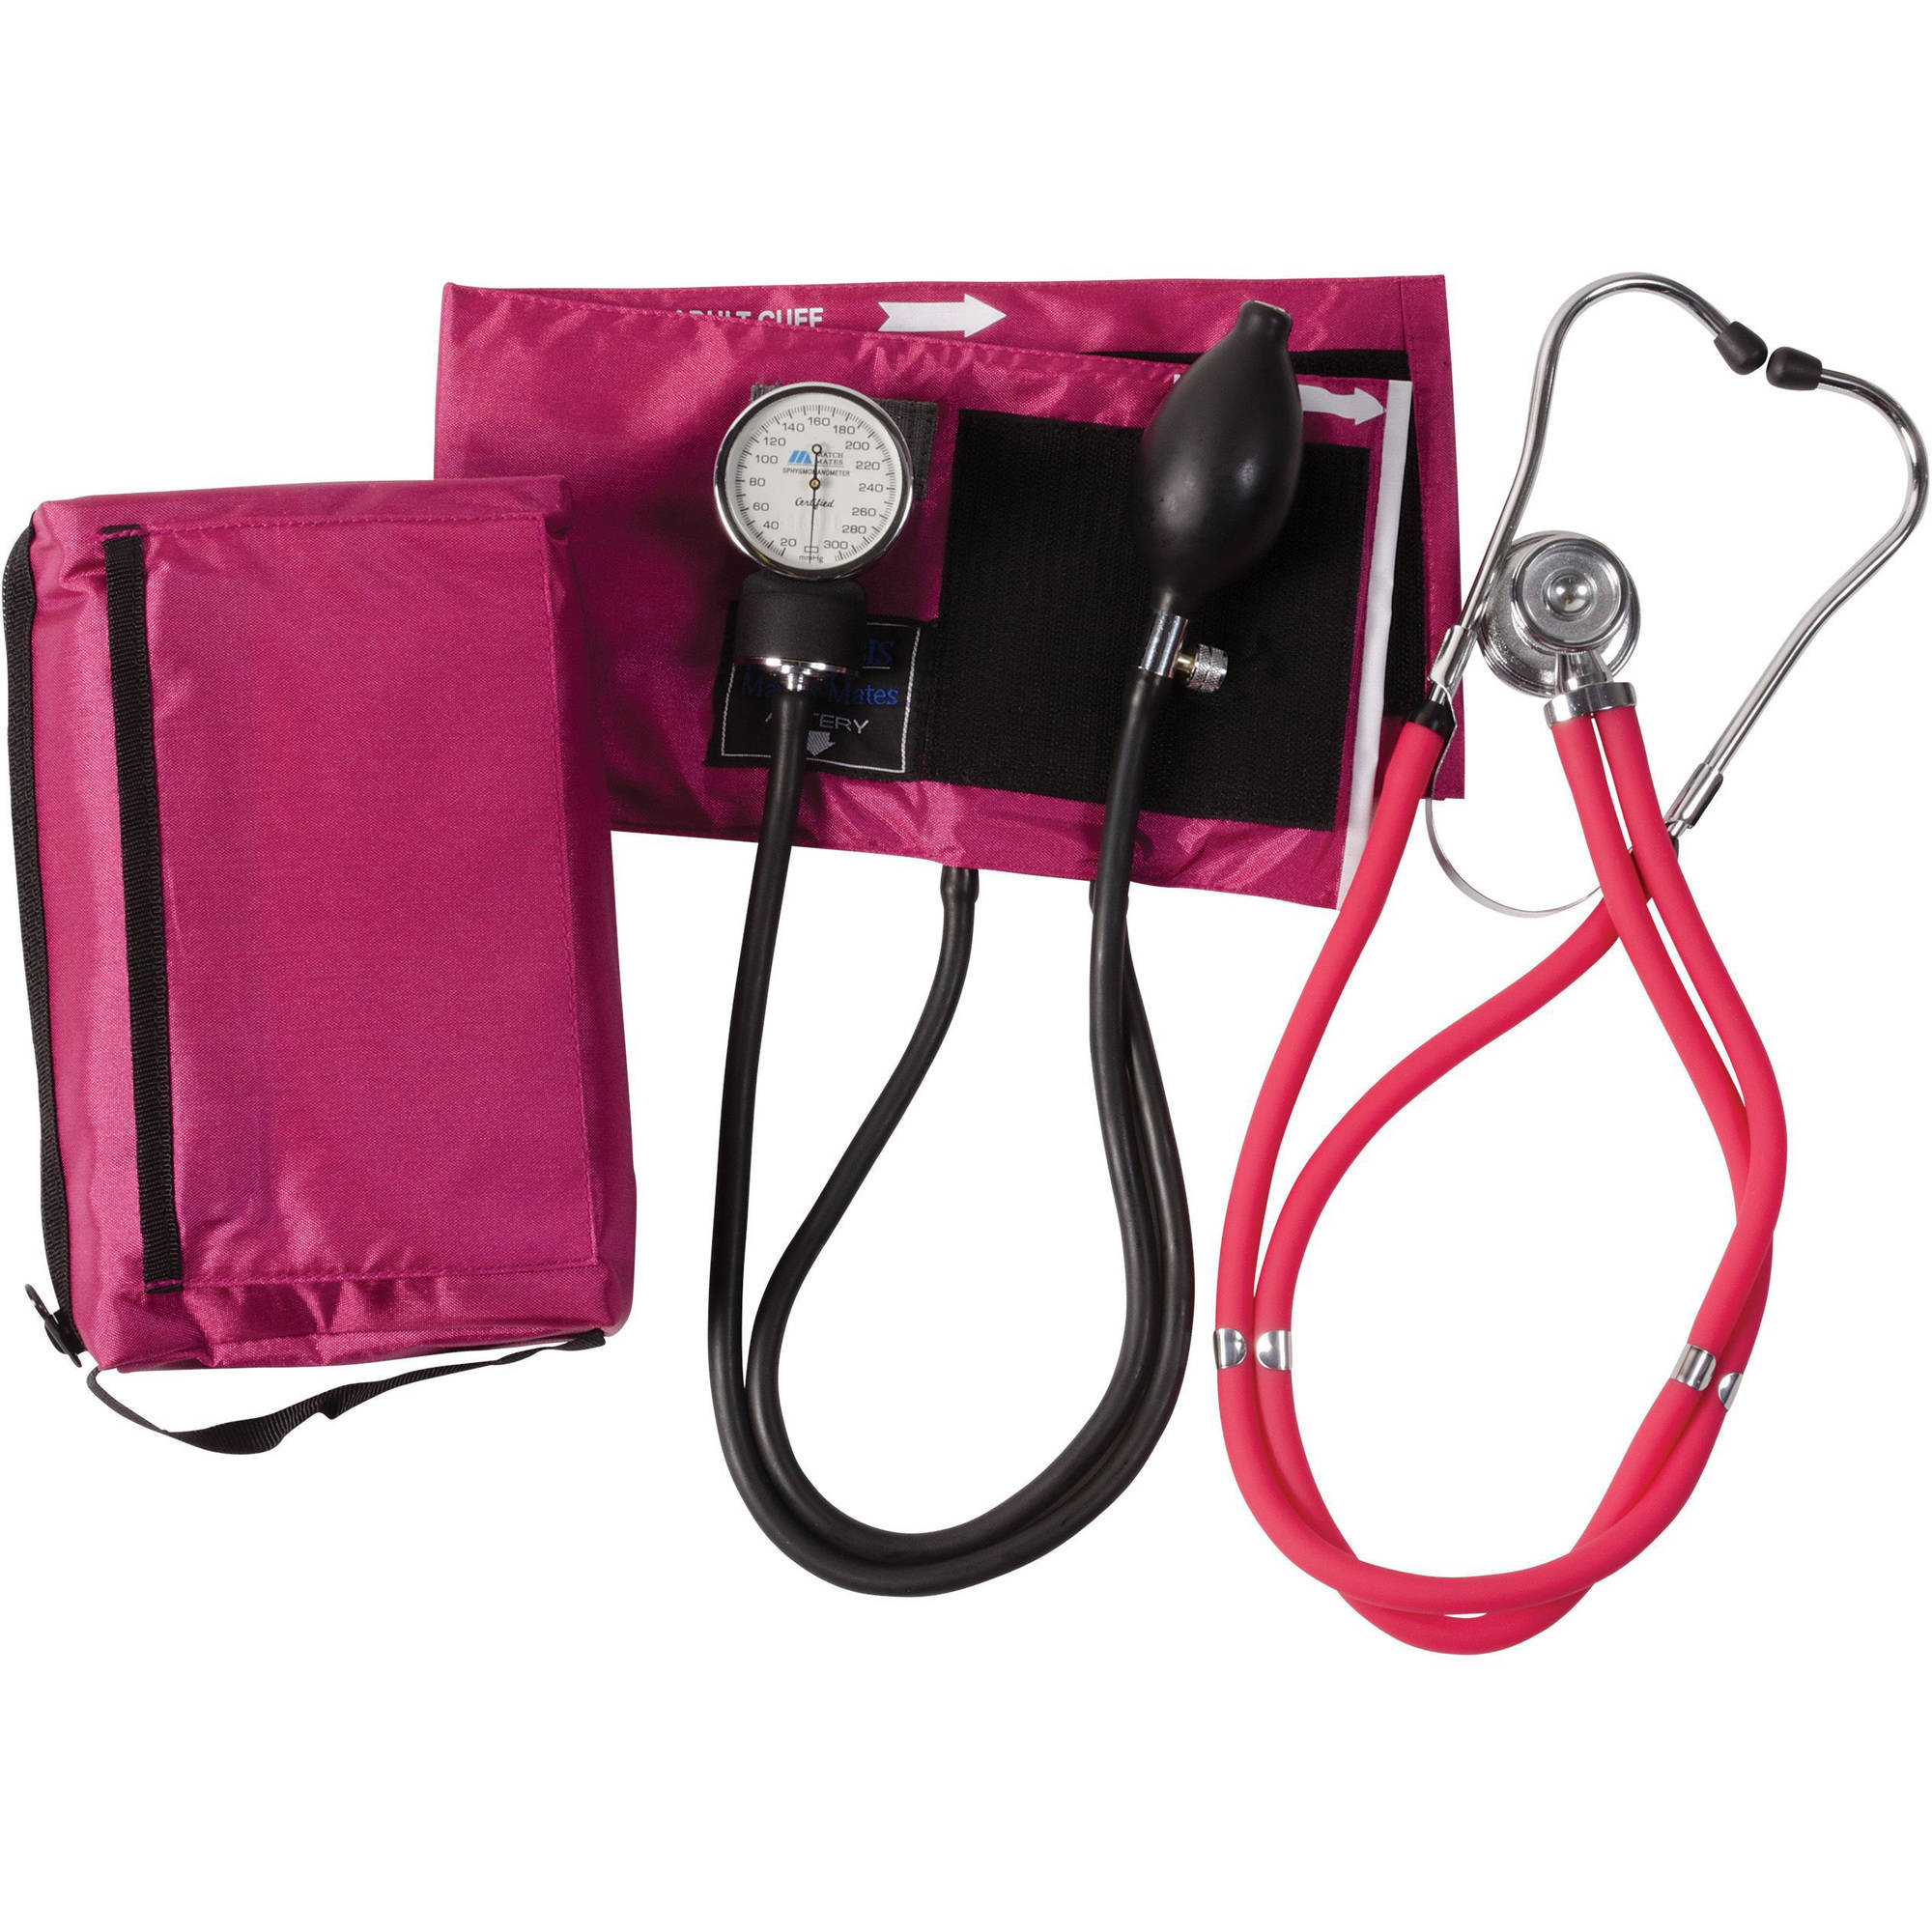 Mabis Blood Pressure Cuff with Aneroid Sphygmomanometer and Sprague Rappaport Stethoscope Combination, Manual Blood Pressure Kit with Calibrated Nylon Cuff for Nurses, Magenta